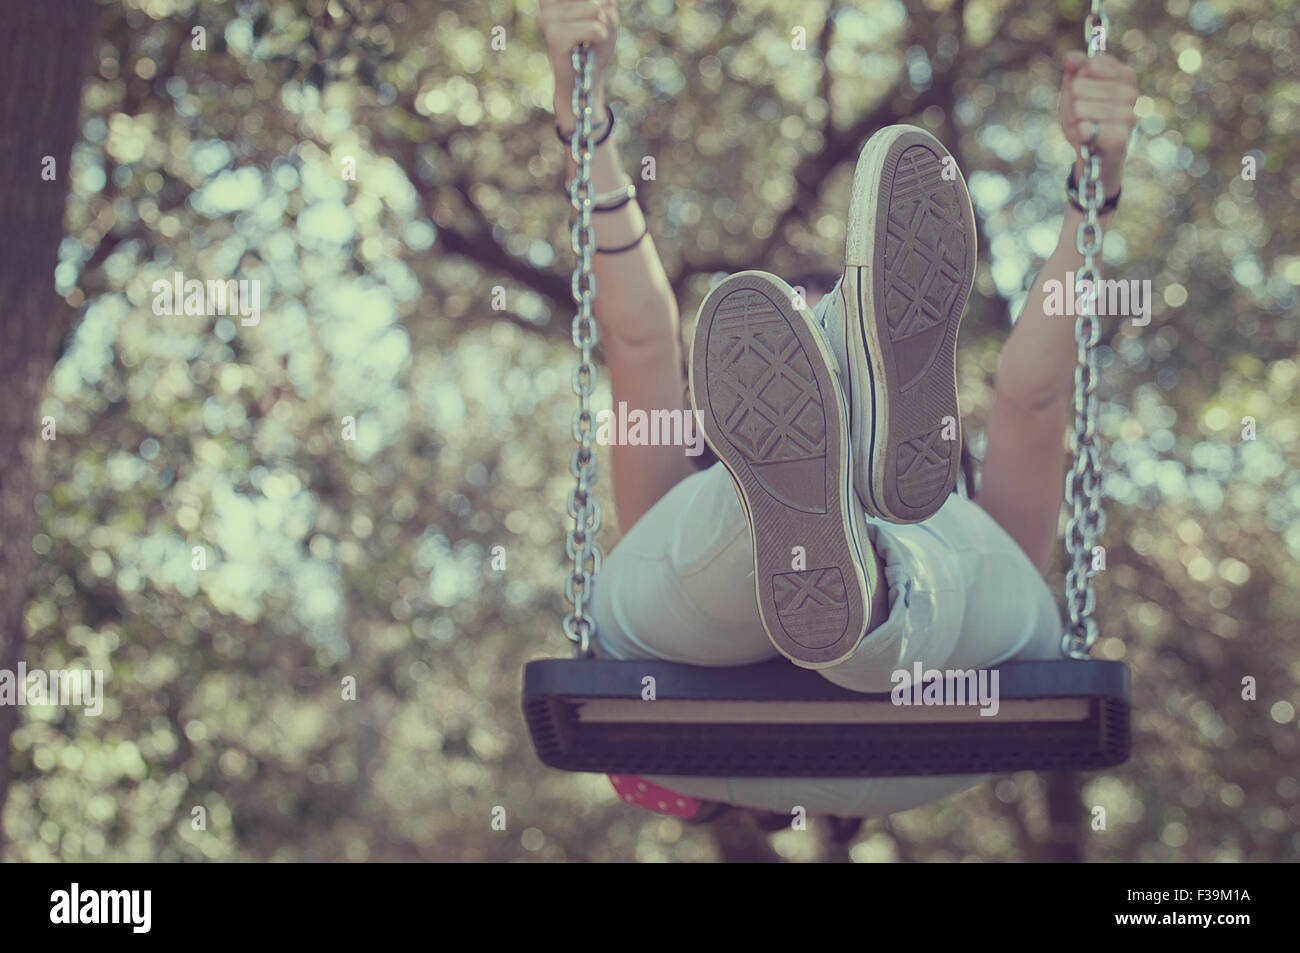 Low angle view of a young girl on a swing Photo Stock